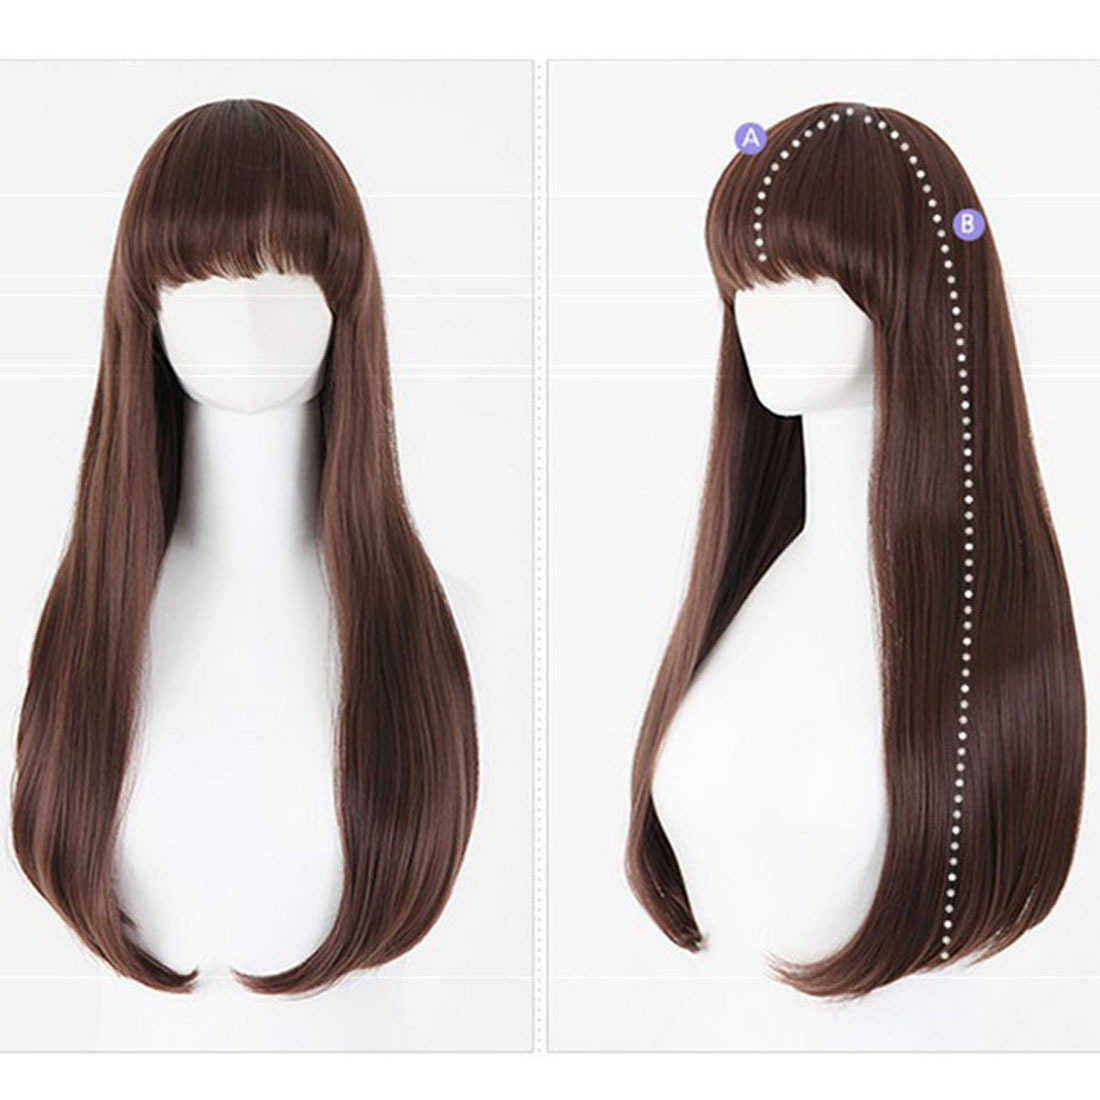 Heat Resistant Hair Wigs Fashion Long Hair Straight with Bangs 26inches - $17.00